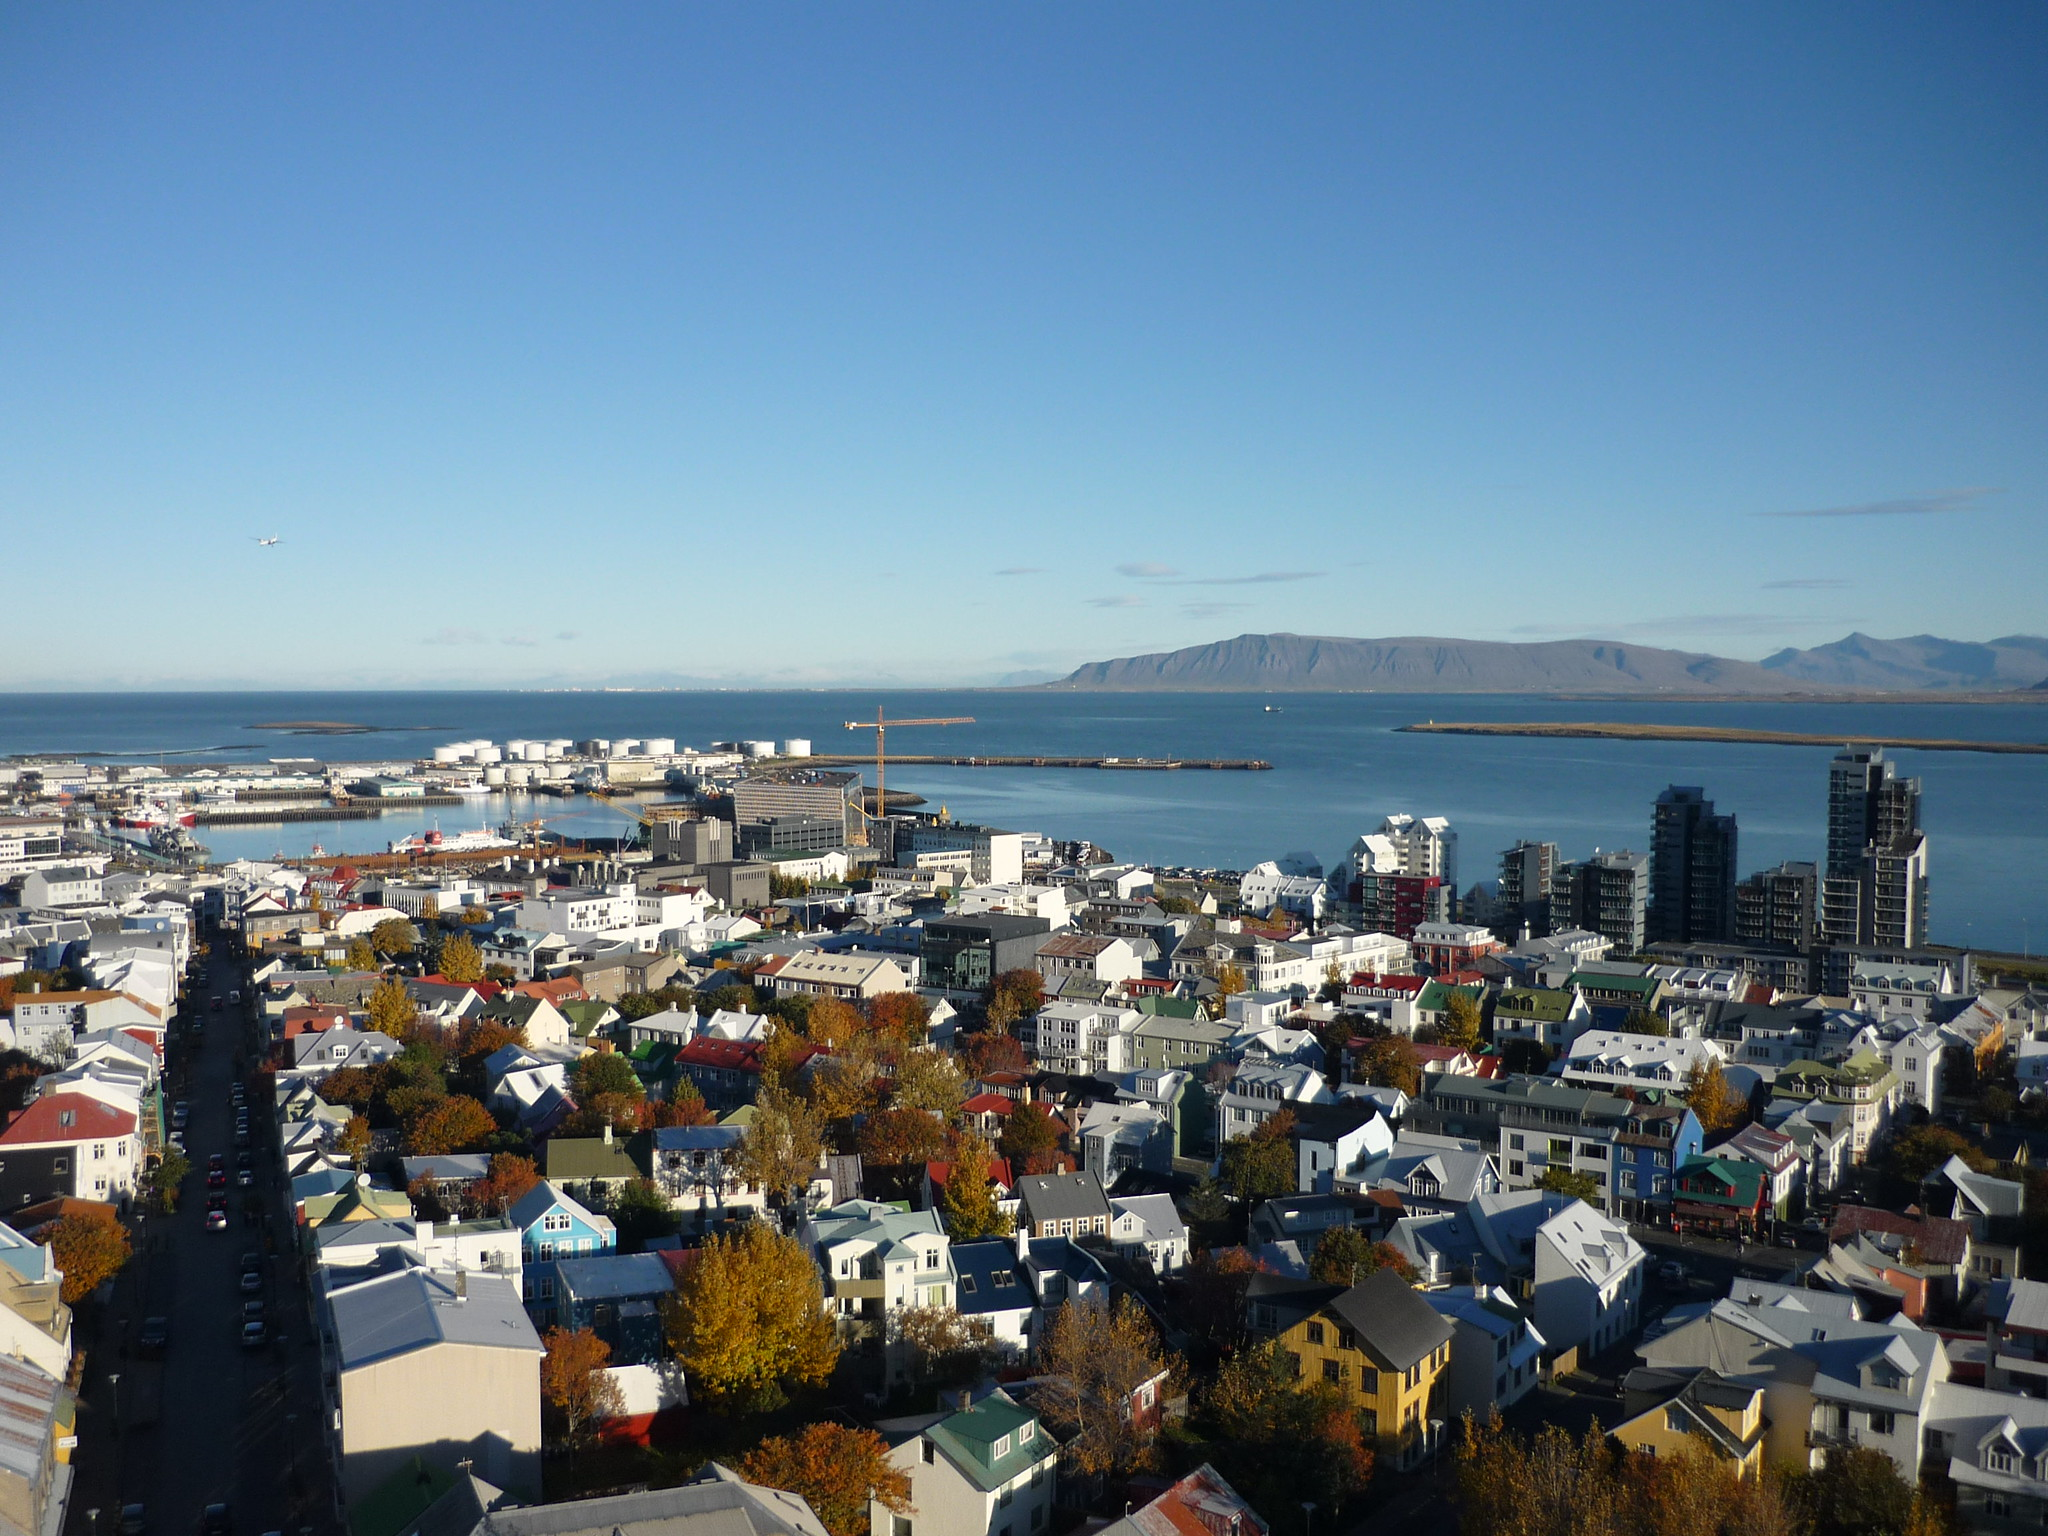 A panoramic shot of Reykjavik, Iceland